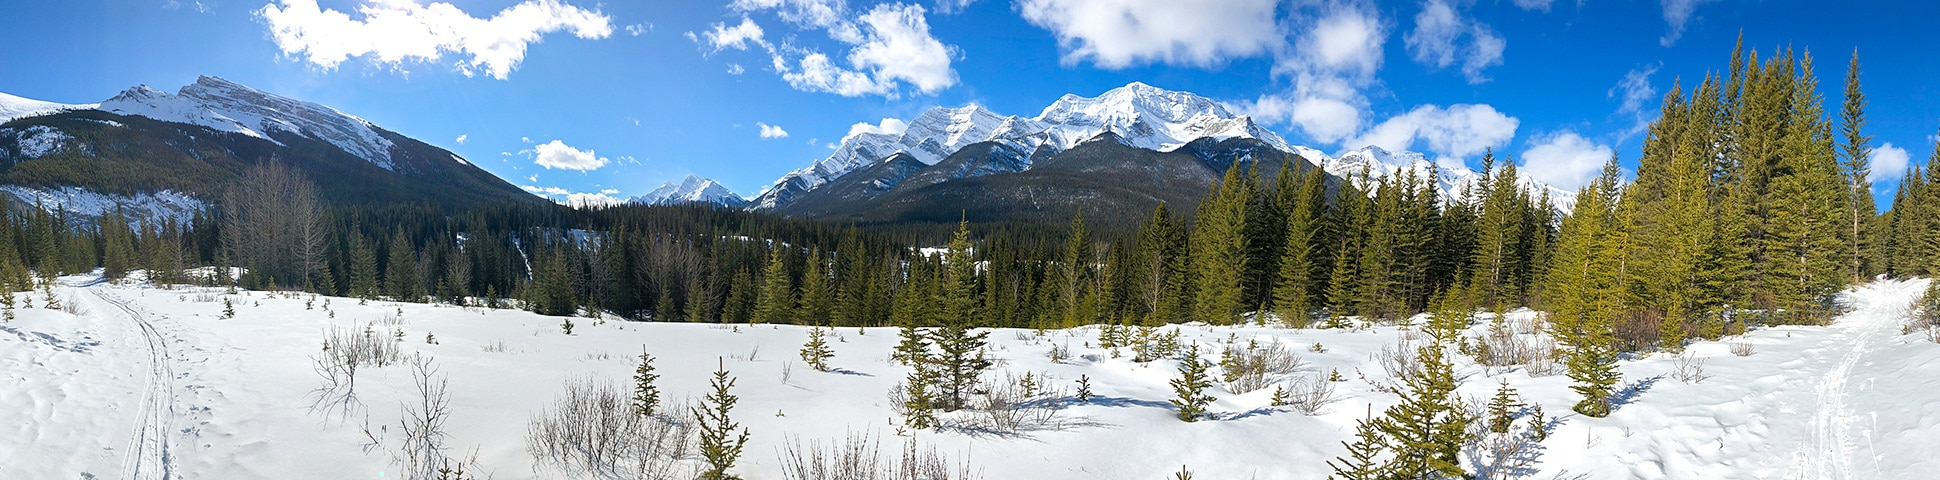 XC skiing trails in Banff National Park, Alberta